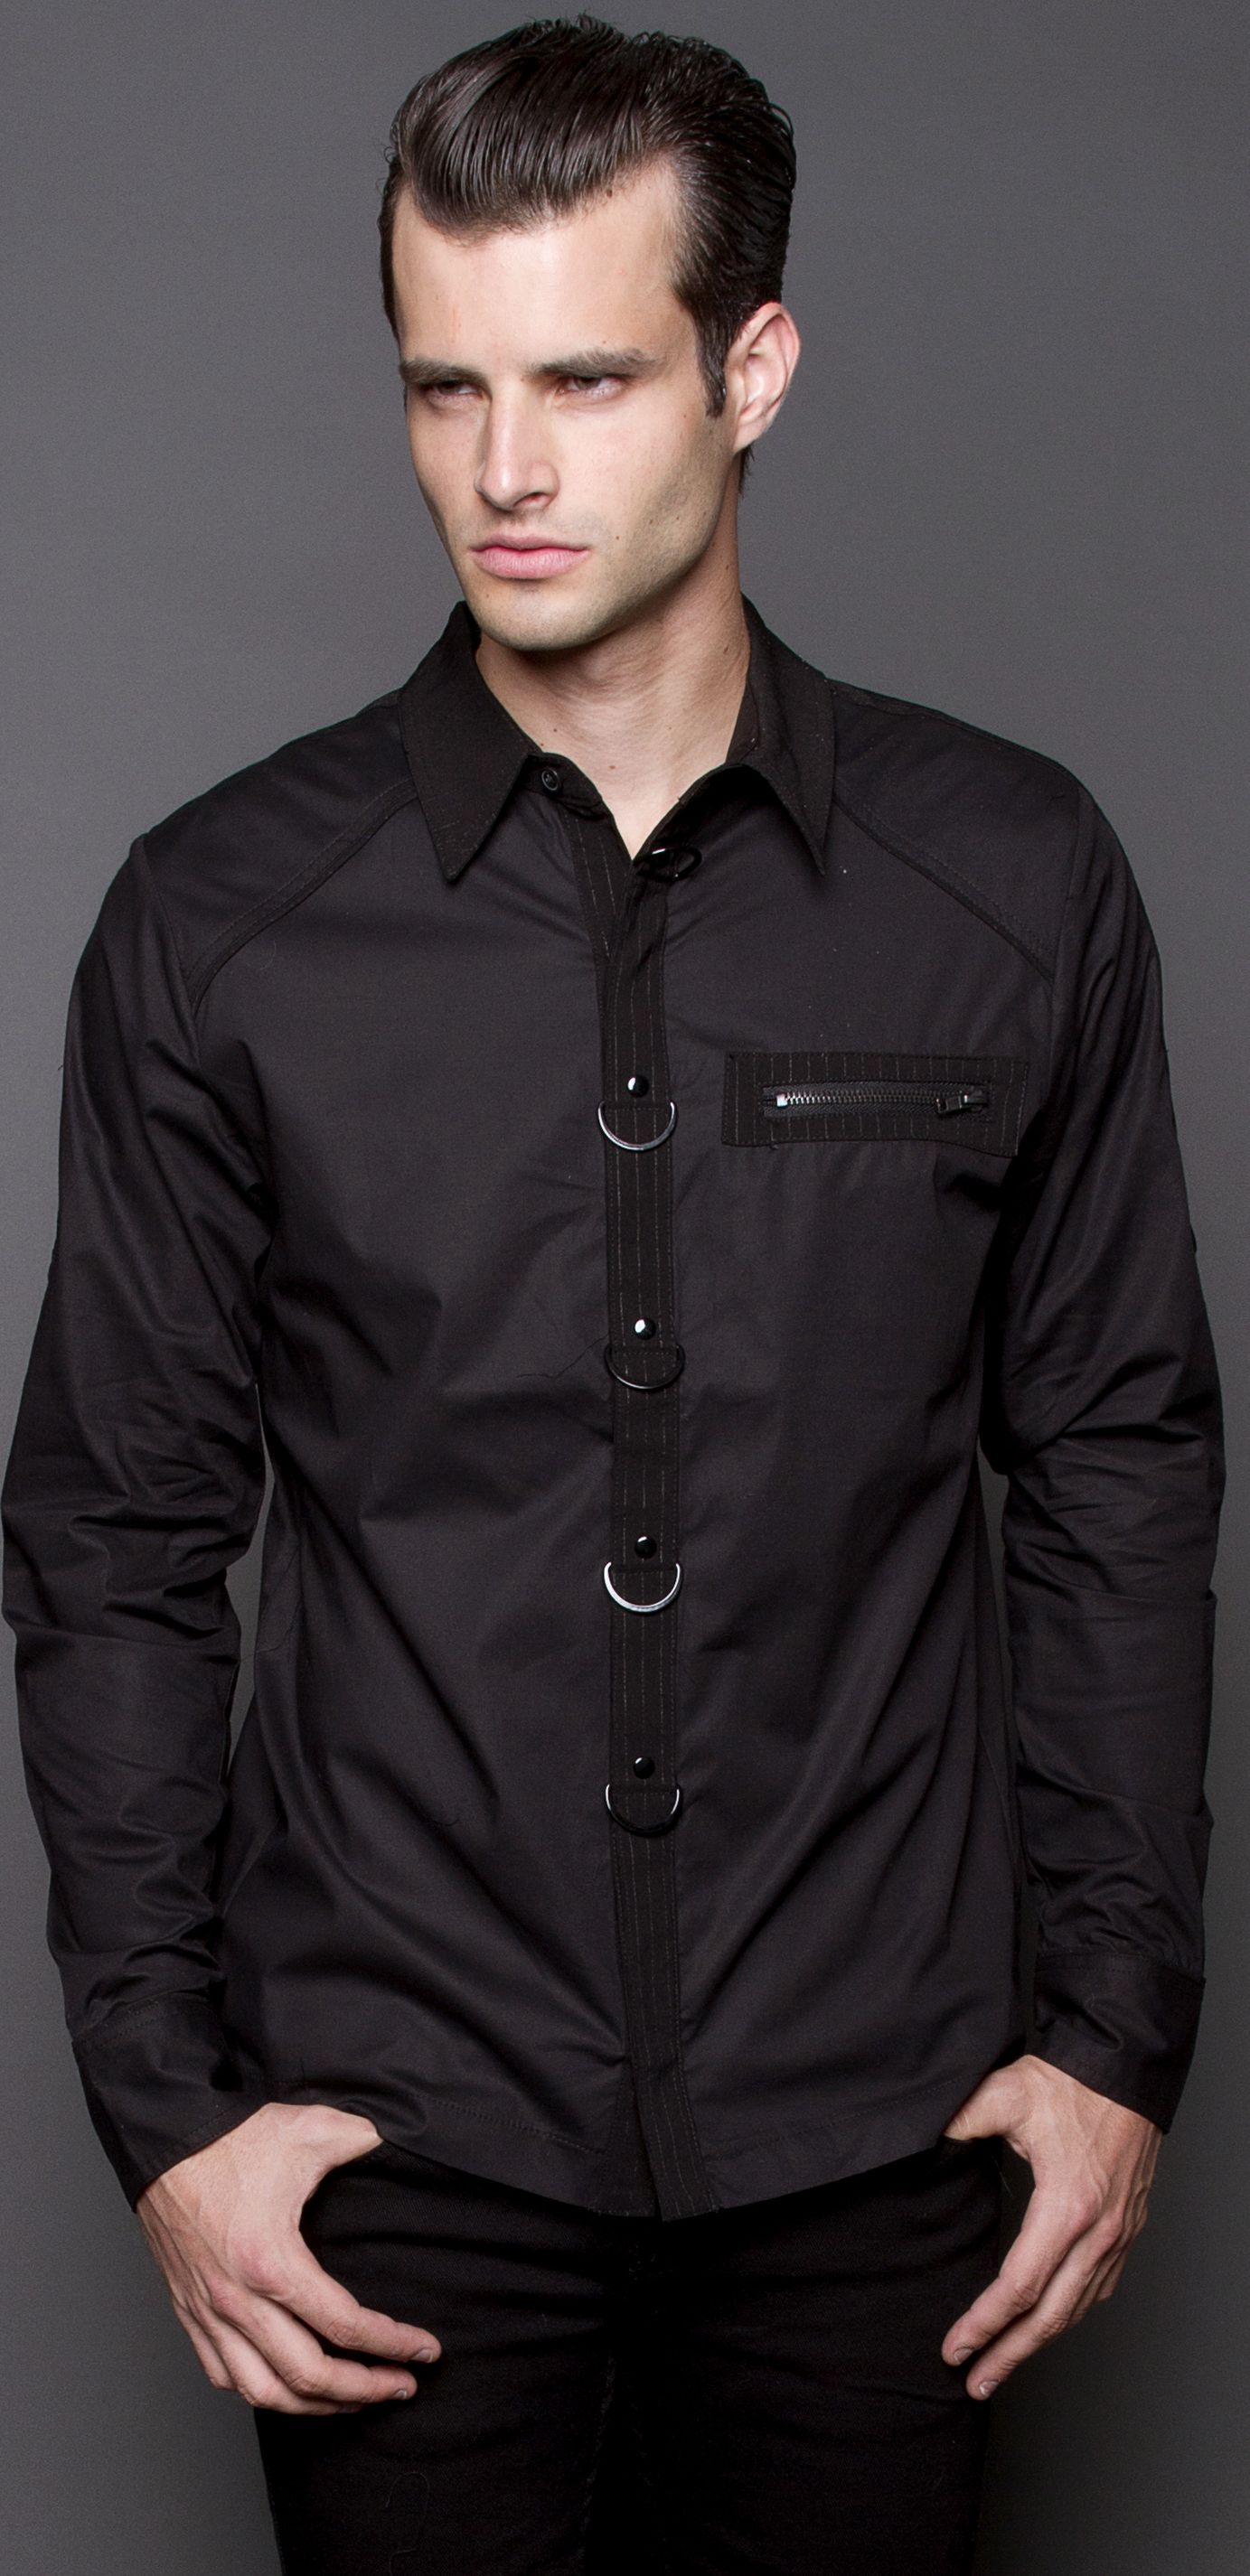 Mens - Shirts - Mens Dress Shirt